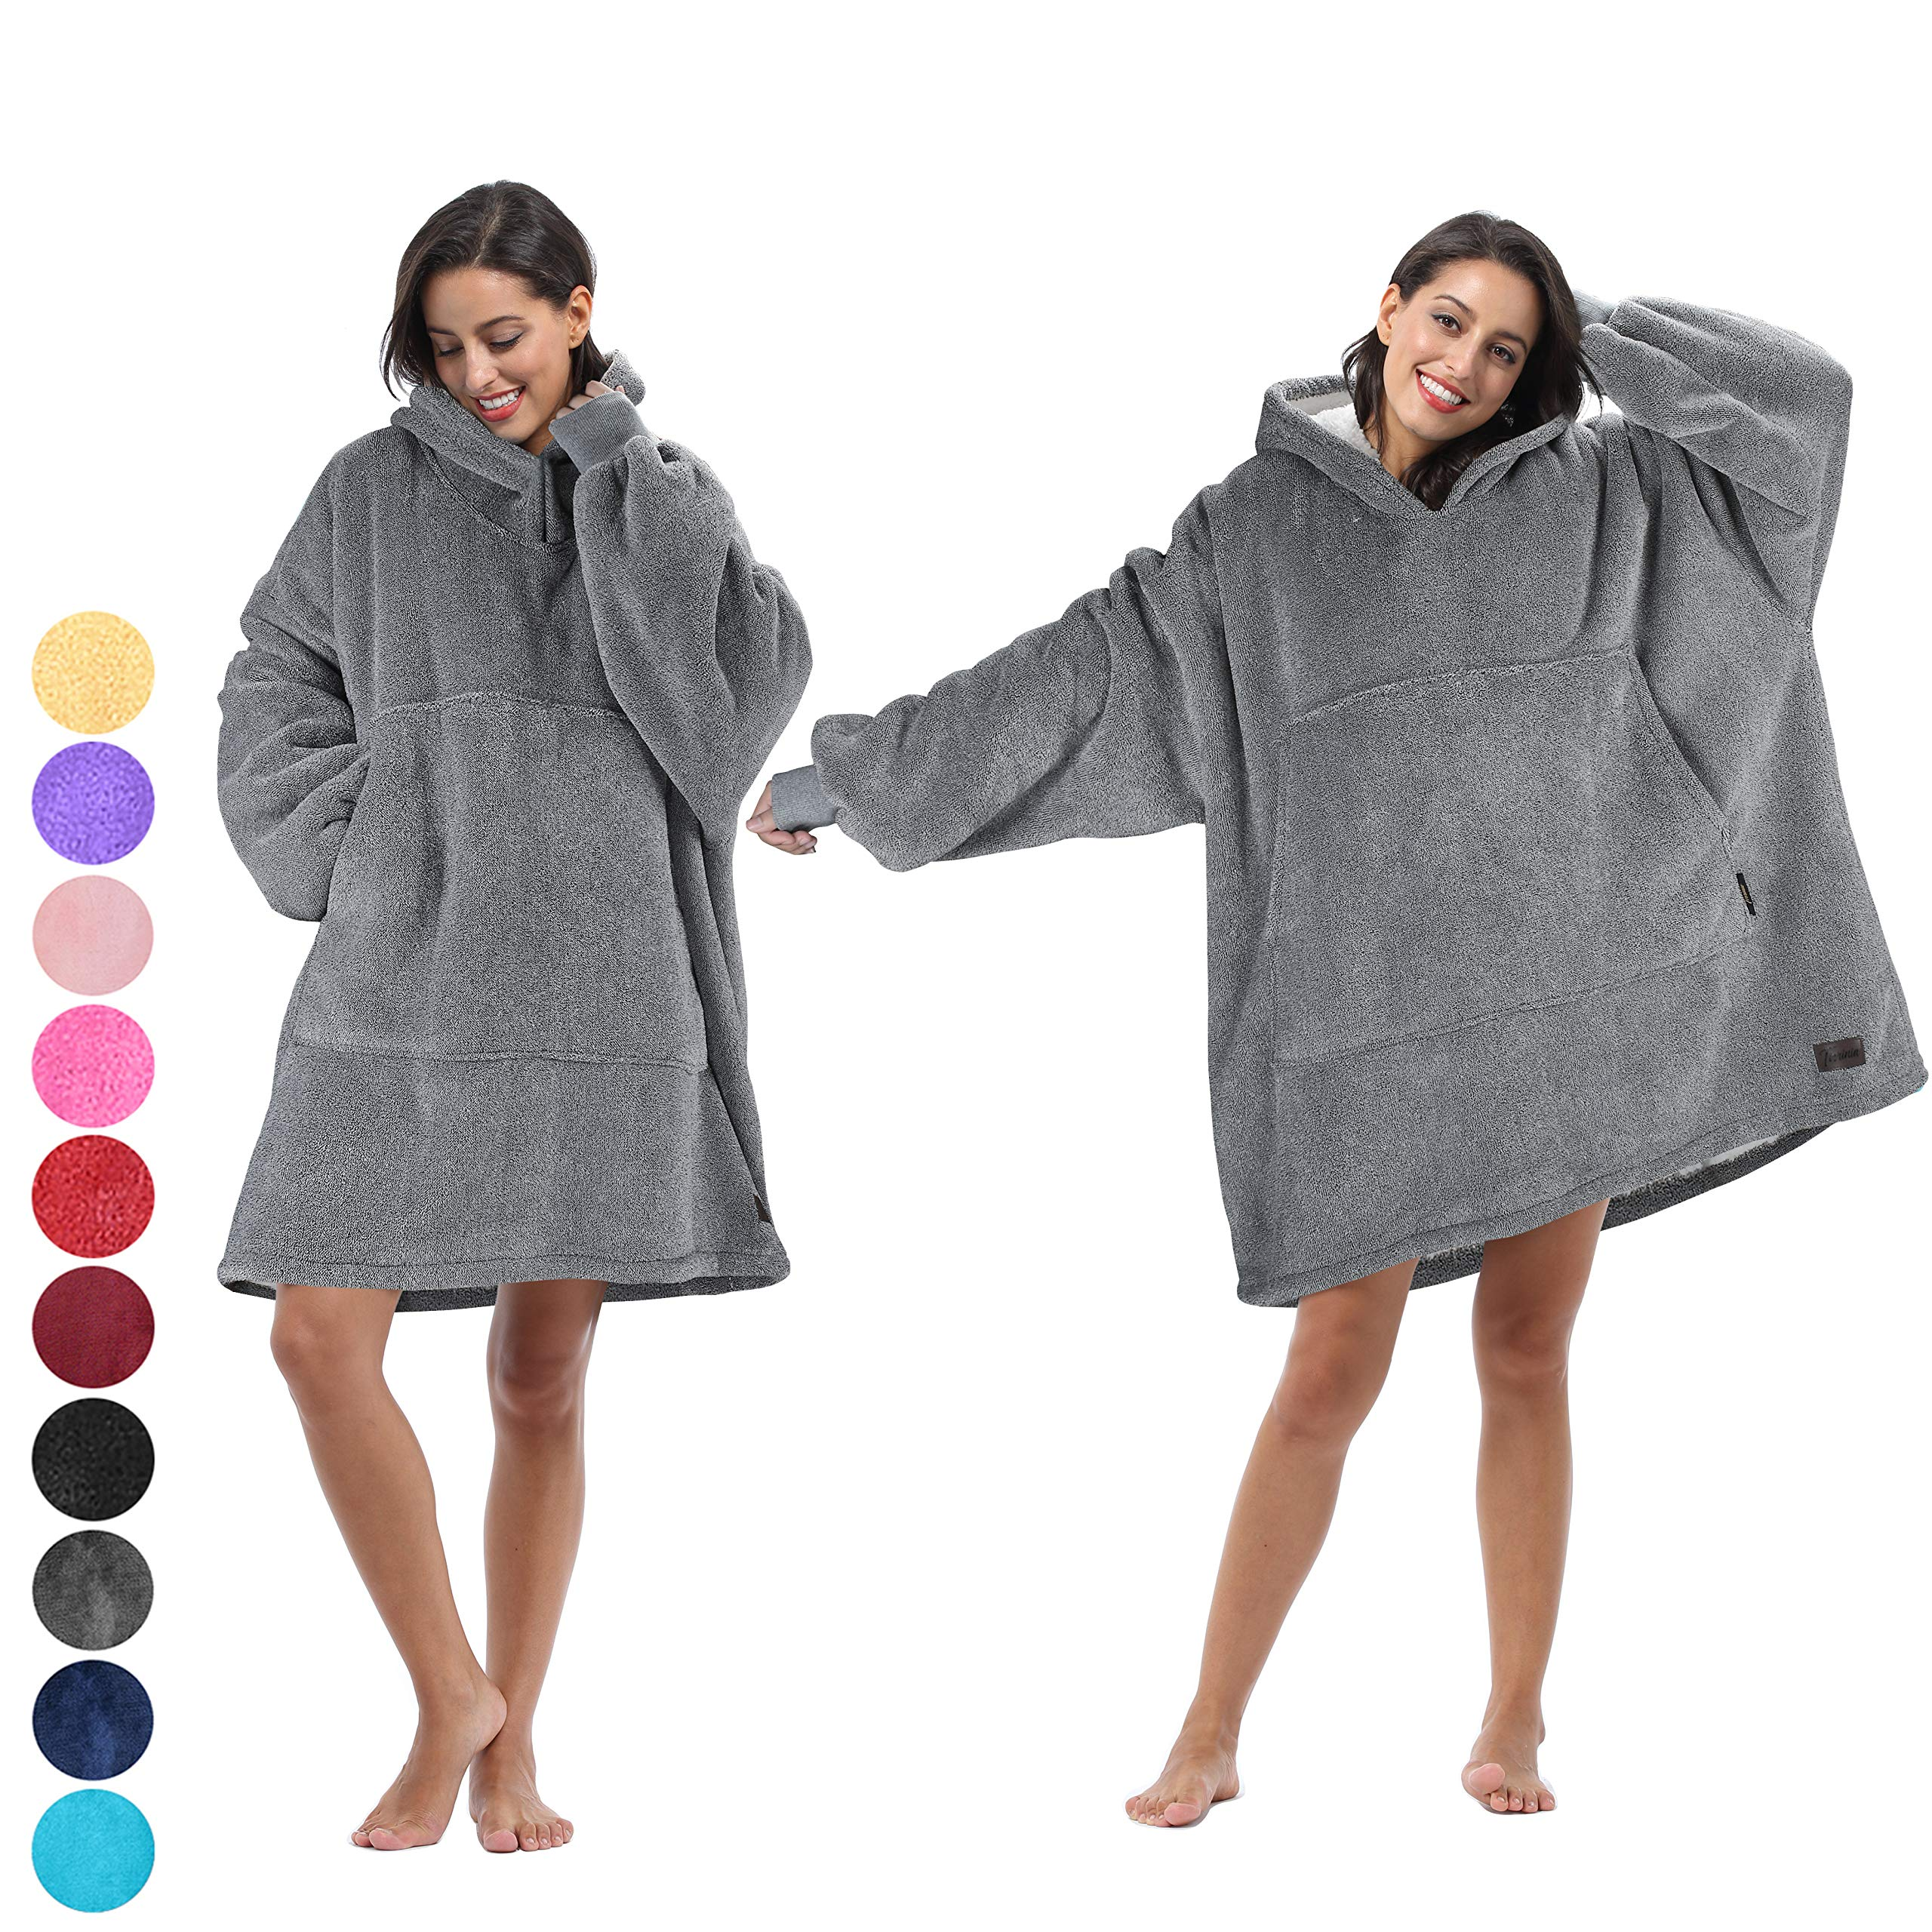 Tirrinia Blanket Sweatshirt, Super Soft Warm Comfortable Sherpa Hoodie with Giant Pocket, for Adults, Kids, Boys, Girls, Reversible, Hood, Oversized (Ash Gray)